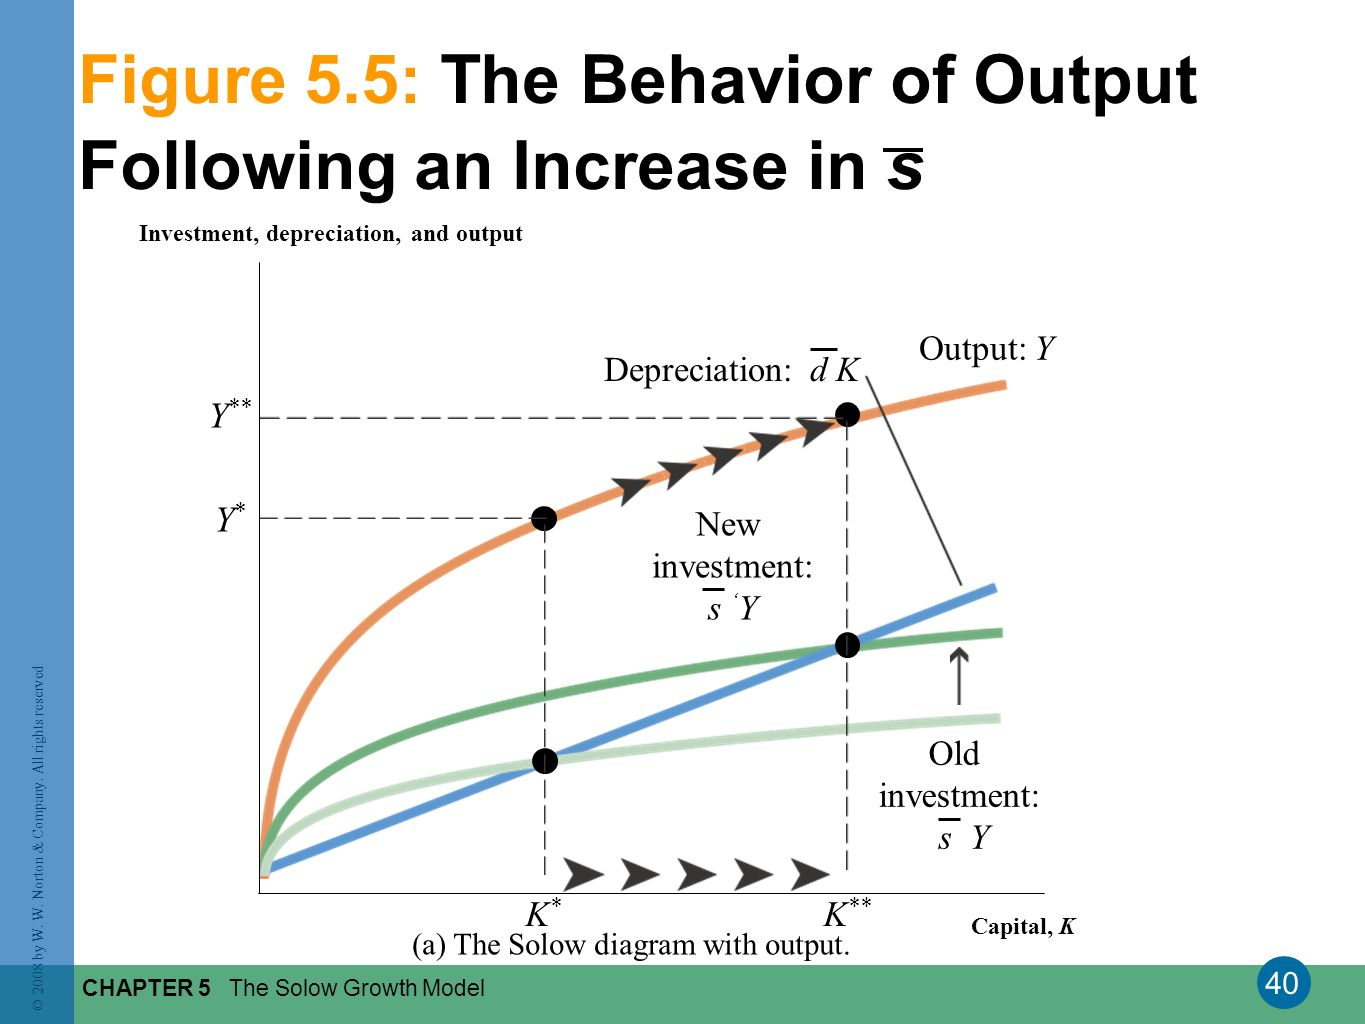 Figure 5.5: The Behavior of Output Following an Increase in s